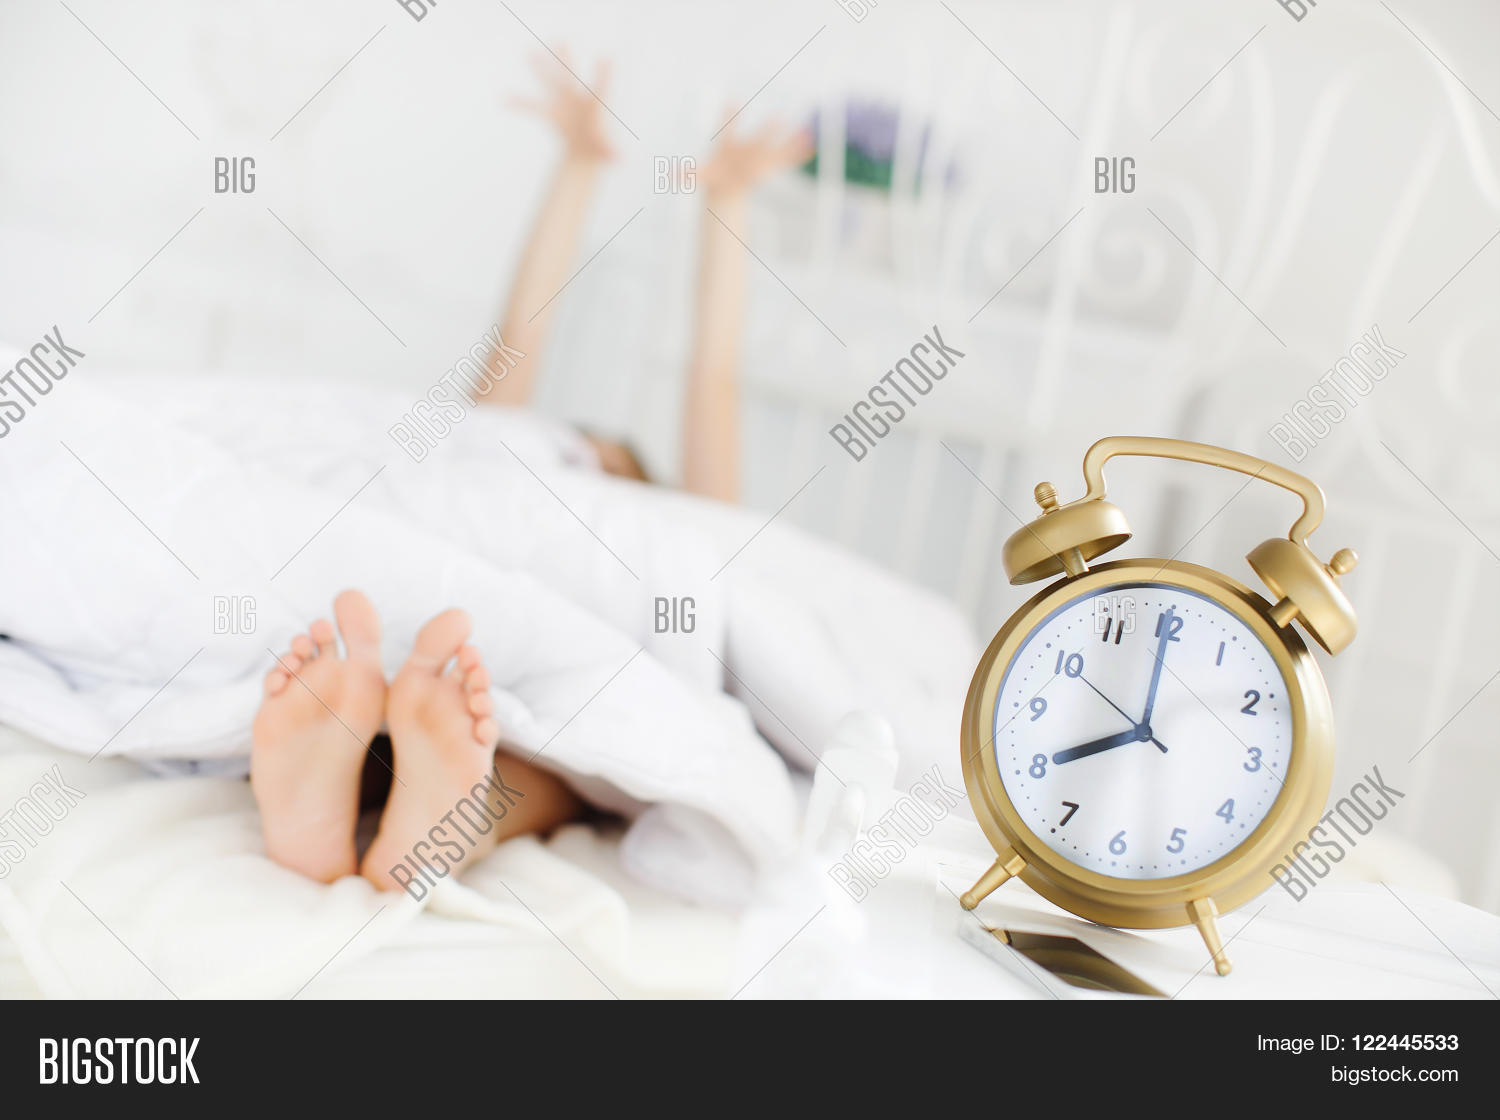 adult,alarm,appointment,attractive,awake,bed,bedroom,bedtime,calm,clock,comfortable,cute,dream,drowsy,girl,good,hour,isolated,lady,late,looking,lovely,lying,minute,morning,nap,pajama,peaceful,person,pillow,portrait,punctual,relax,relaxation,rest,sleep,sleepy,studio,time,tired,wake,waking,watch,white,woman,young